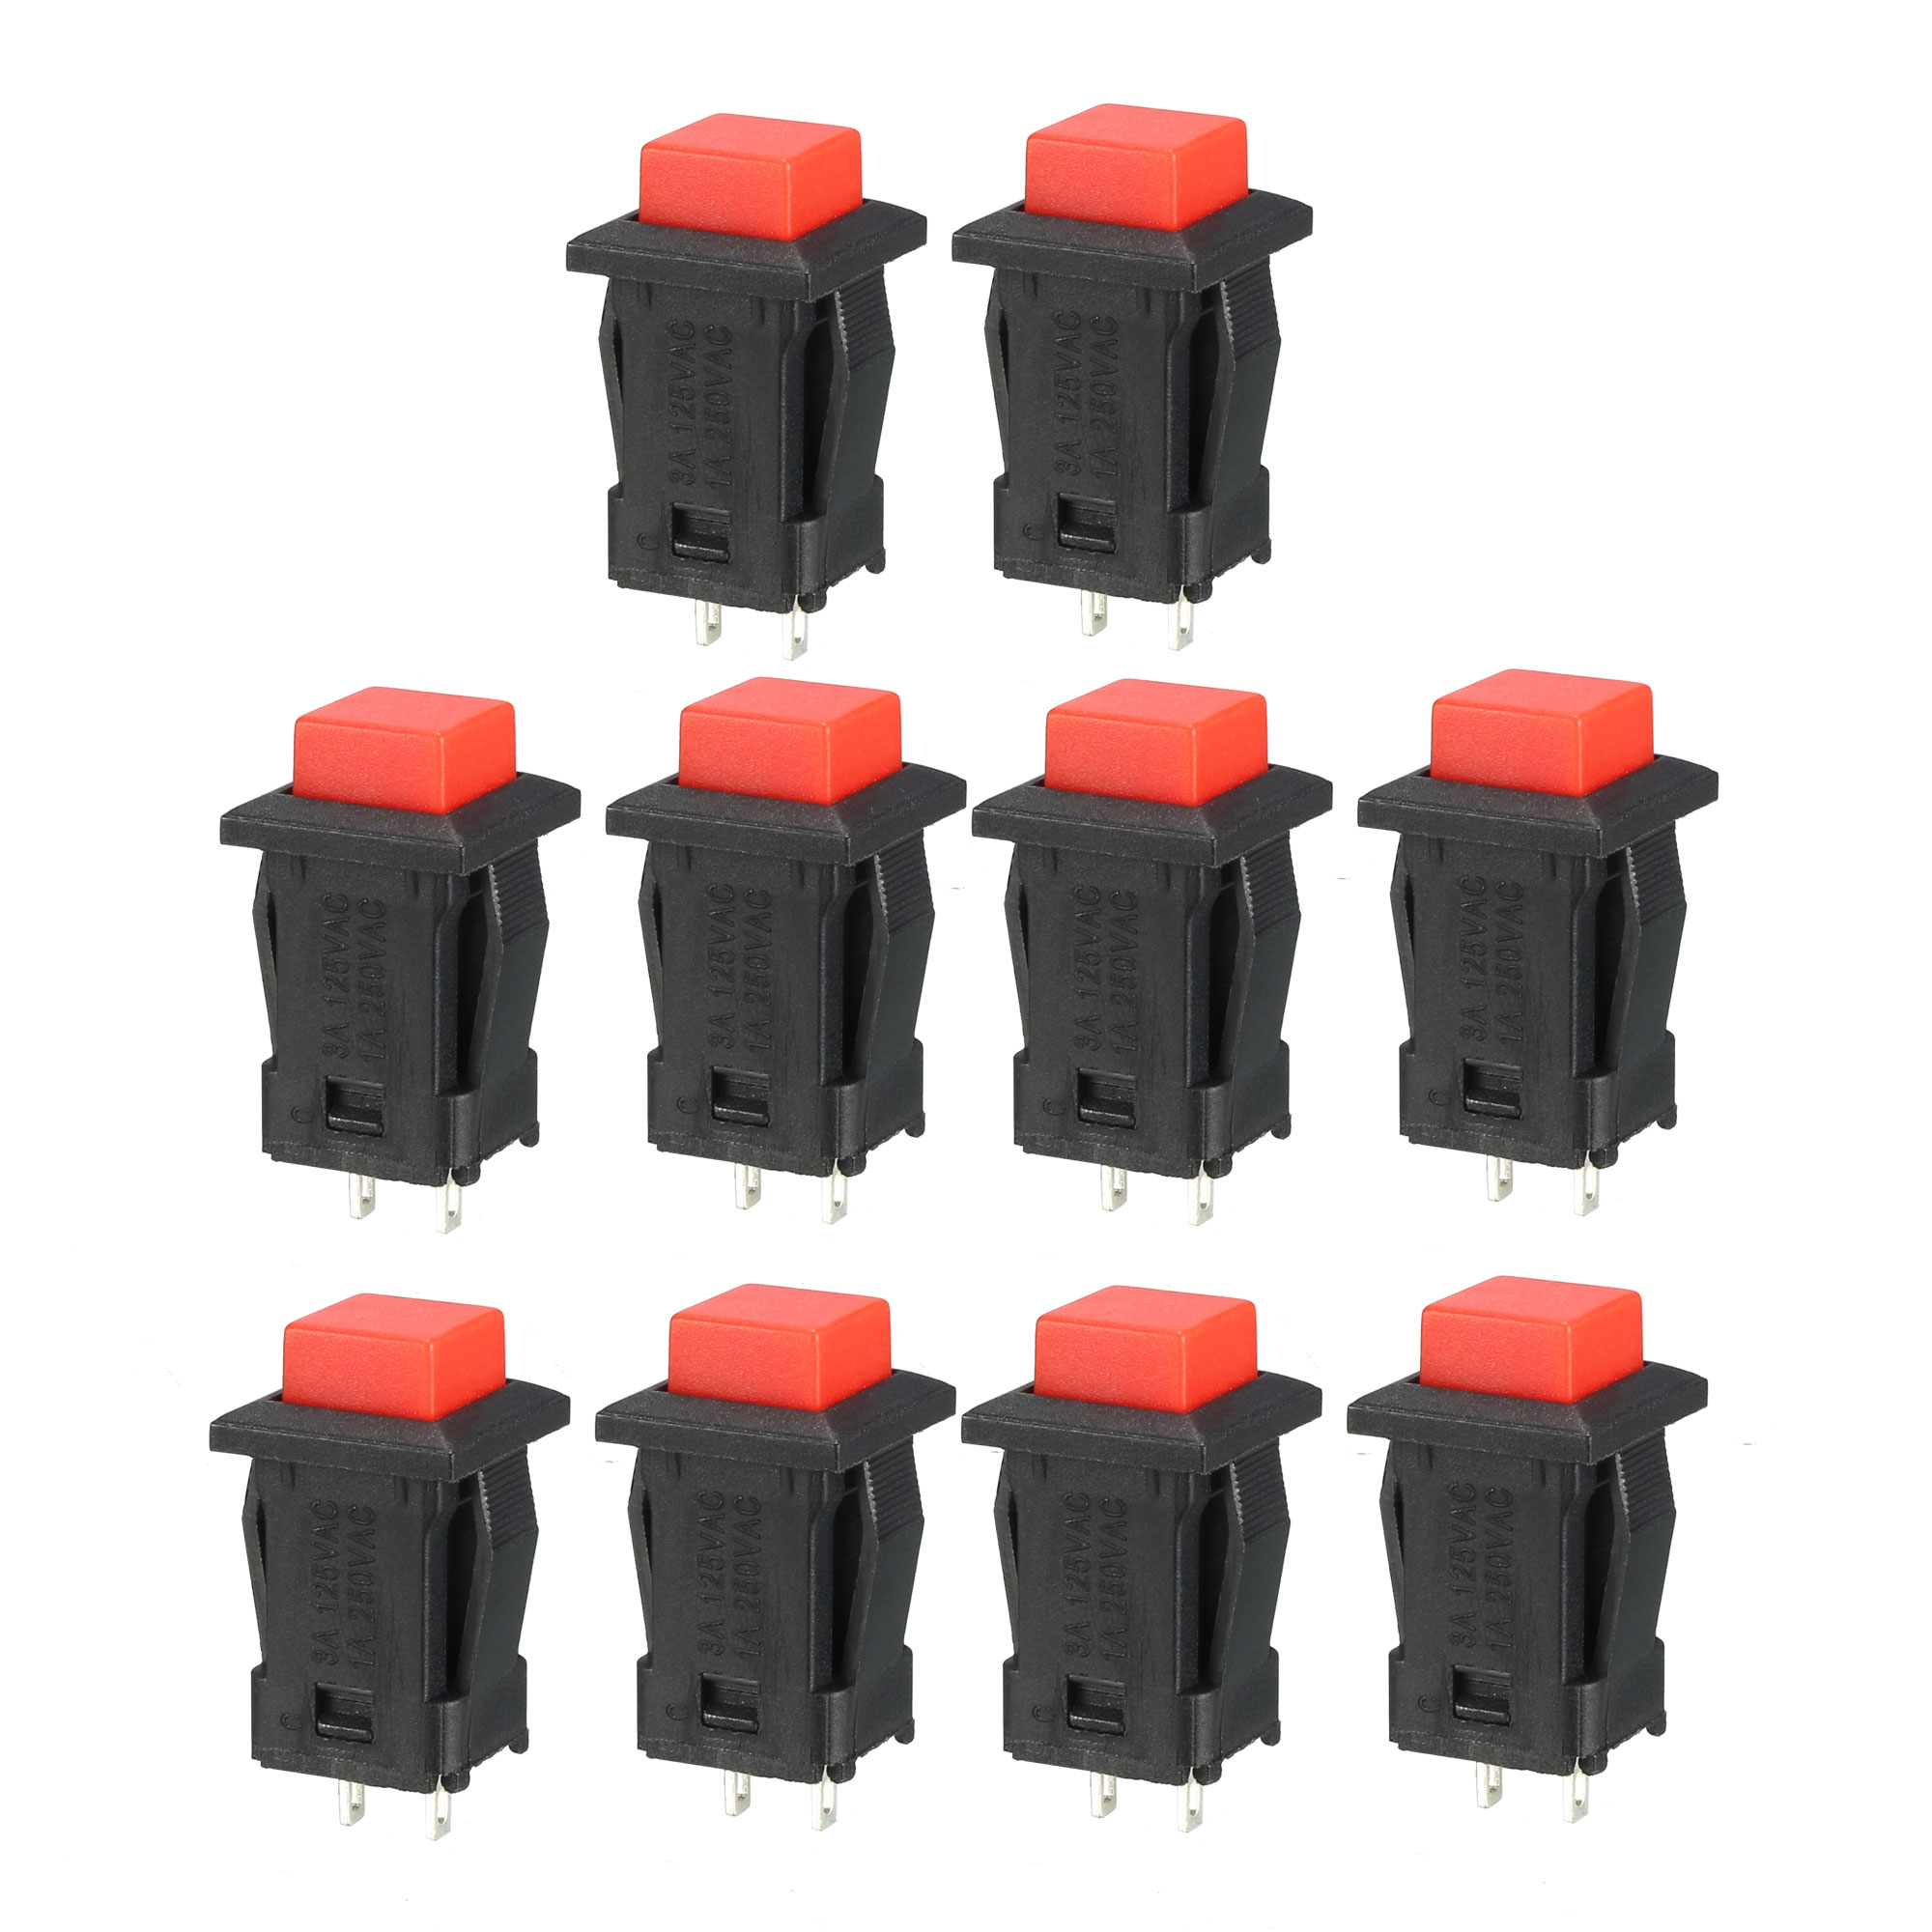 12mm Mounting Hole Red Square Latching Push Button Switch SPST NO 10pcs - image 4 of 4